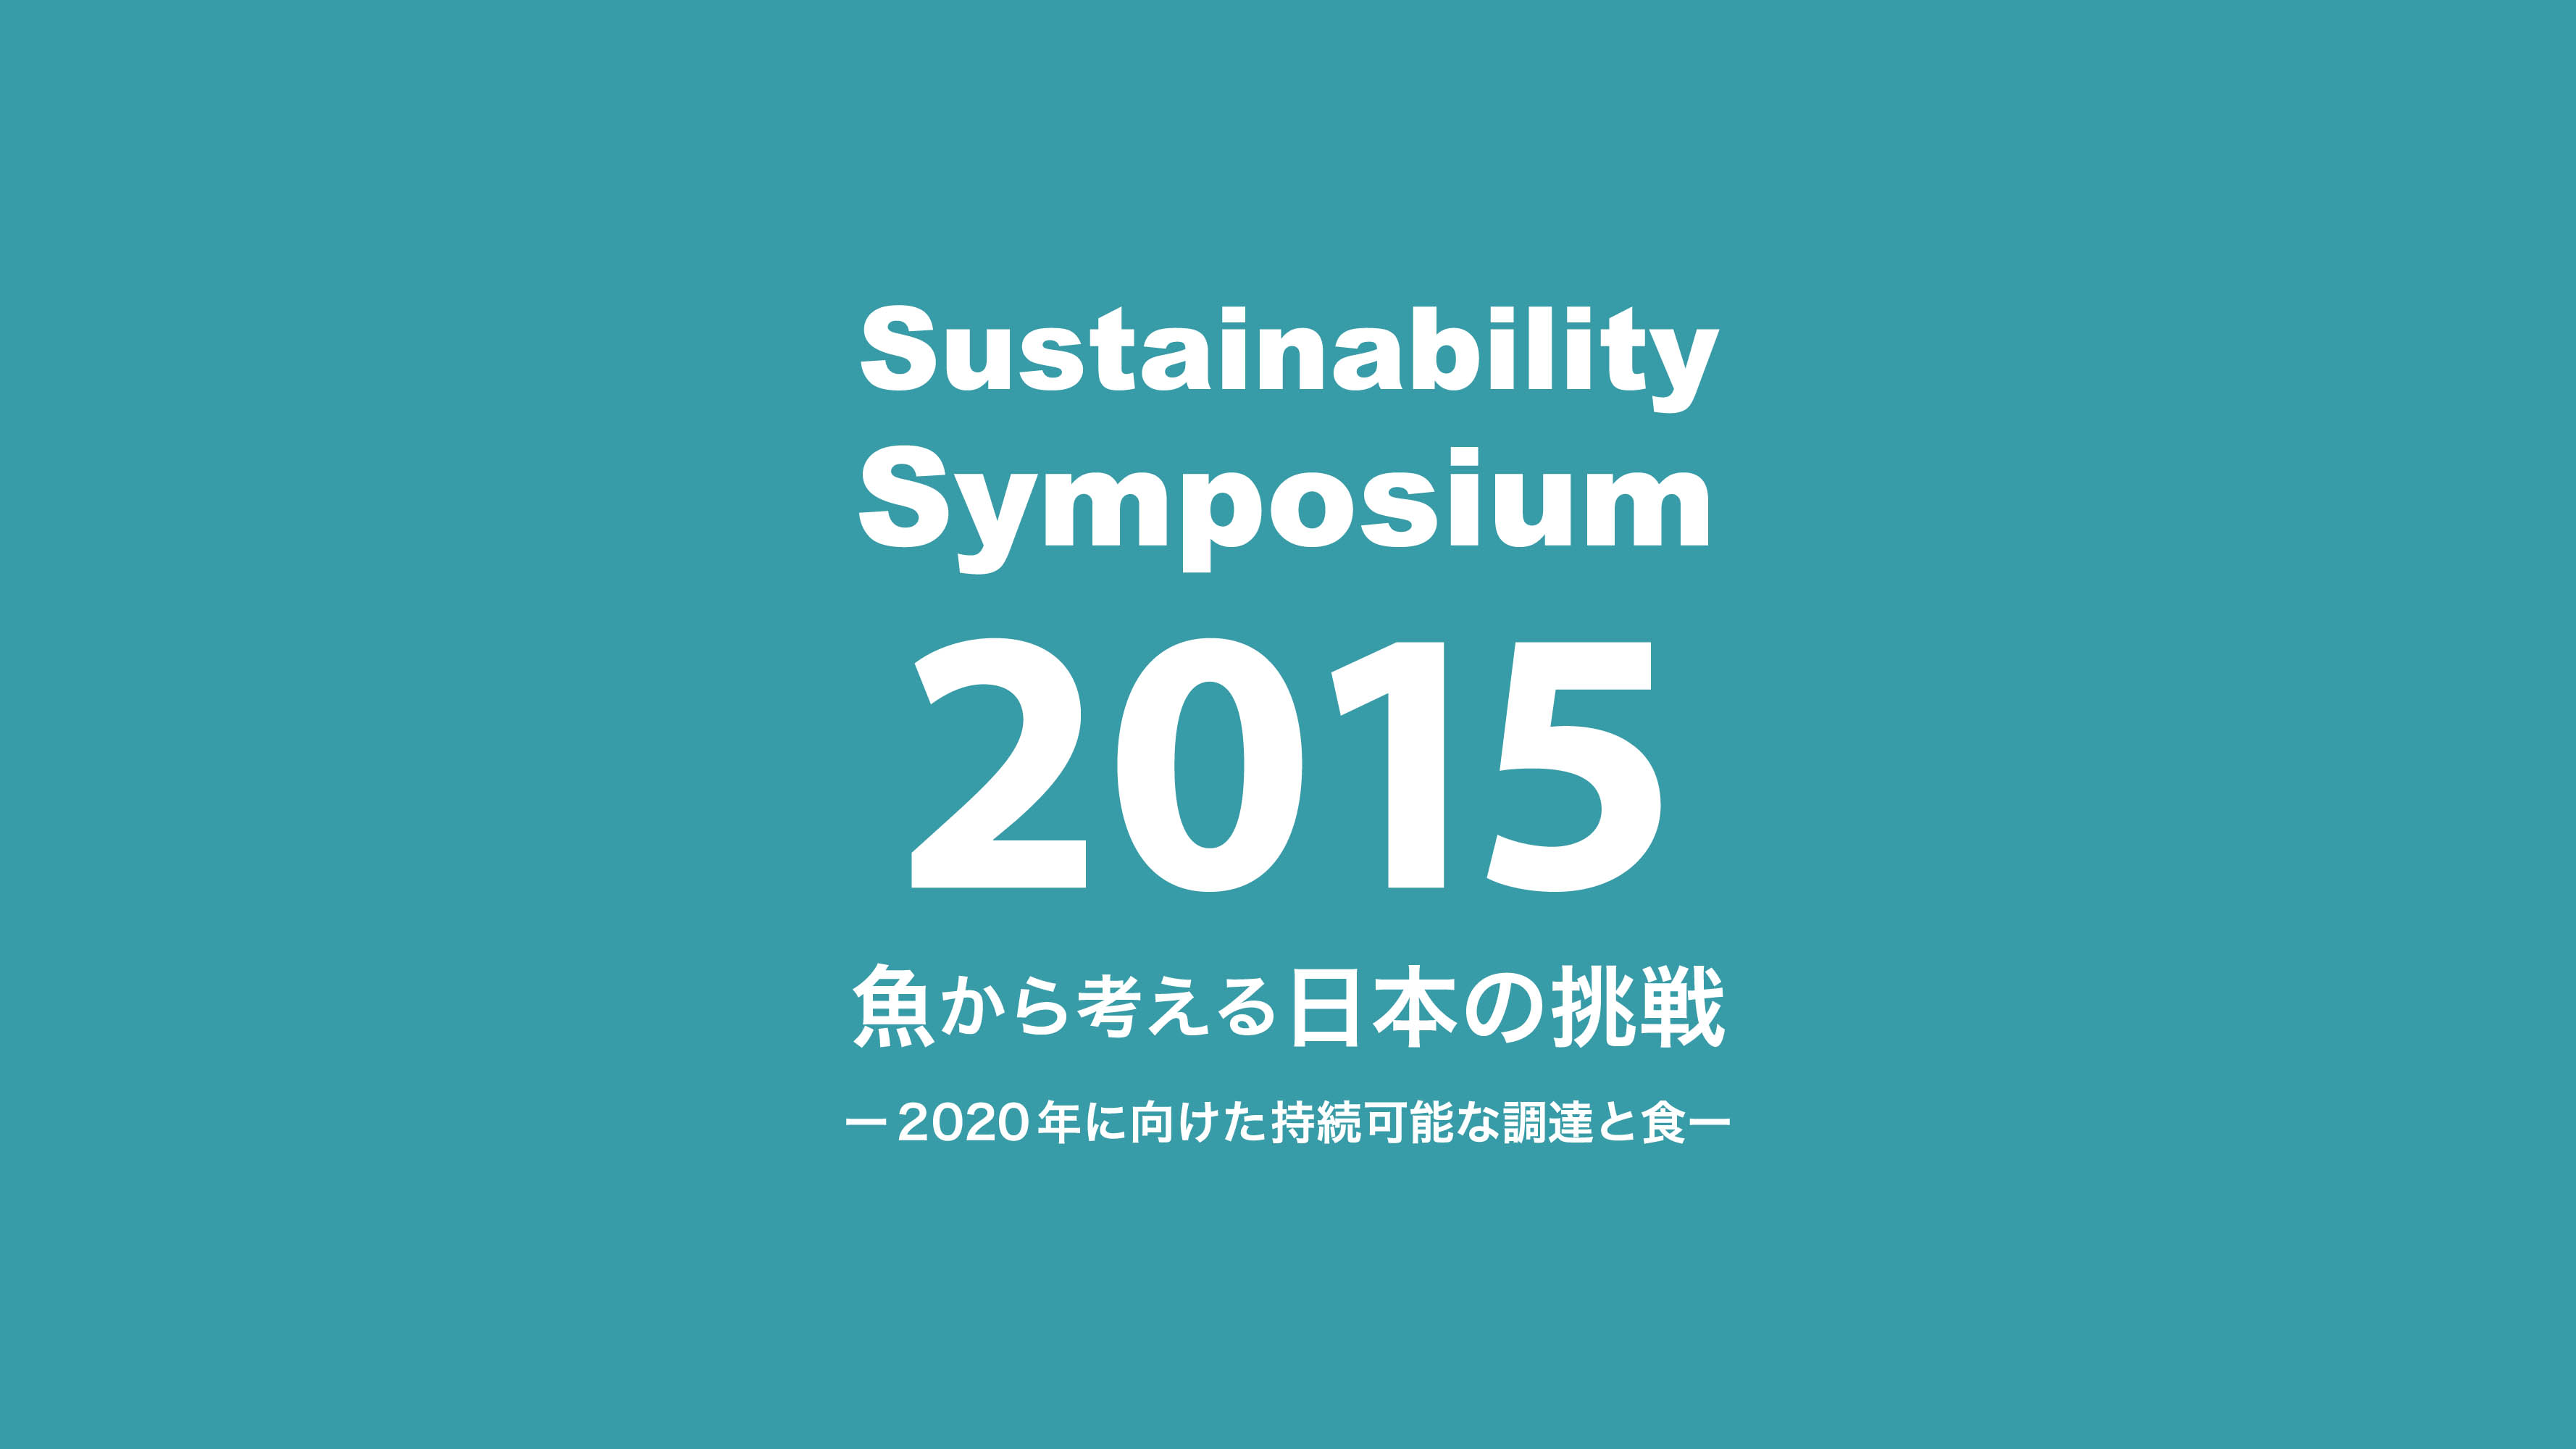 Sustainability Symposium 2015